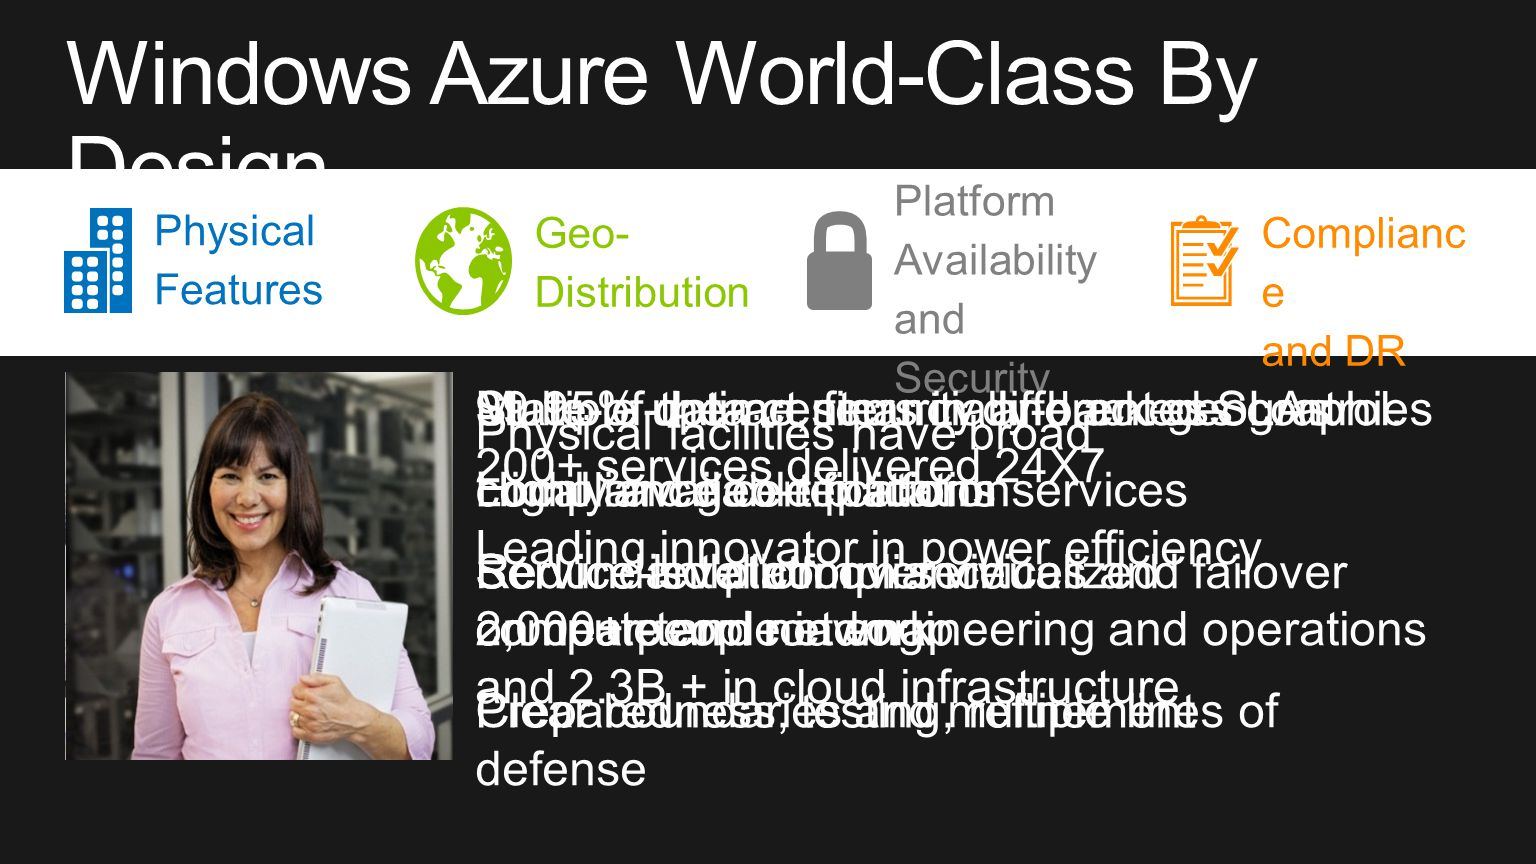 Windows Azure World-Class By Design